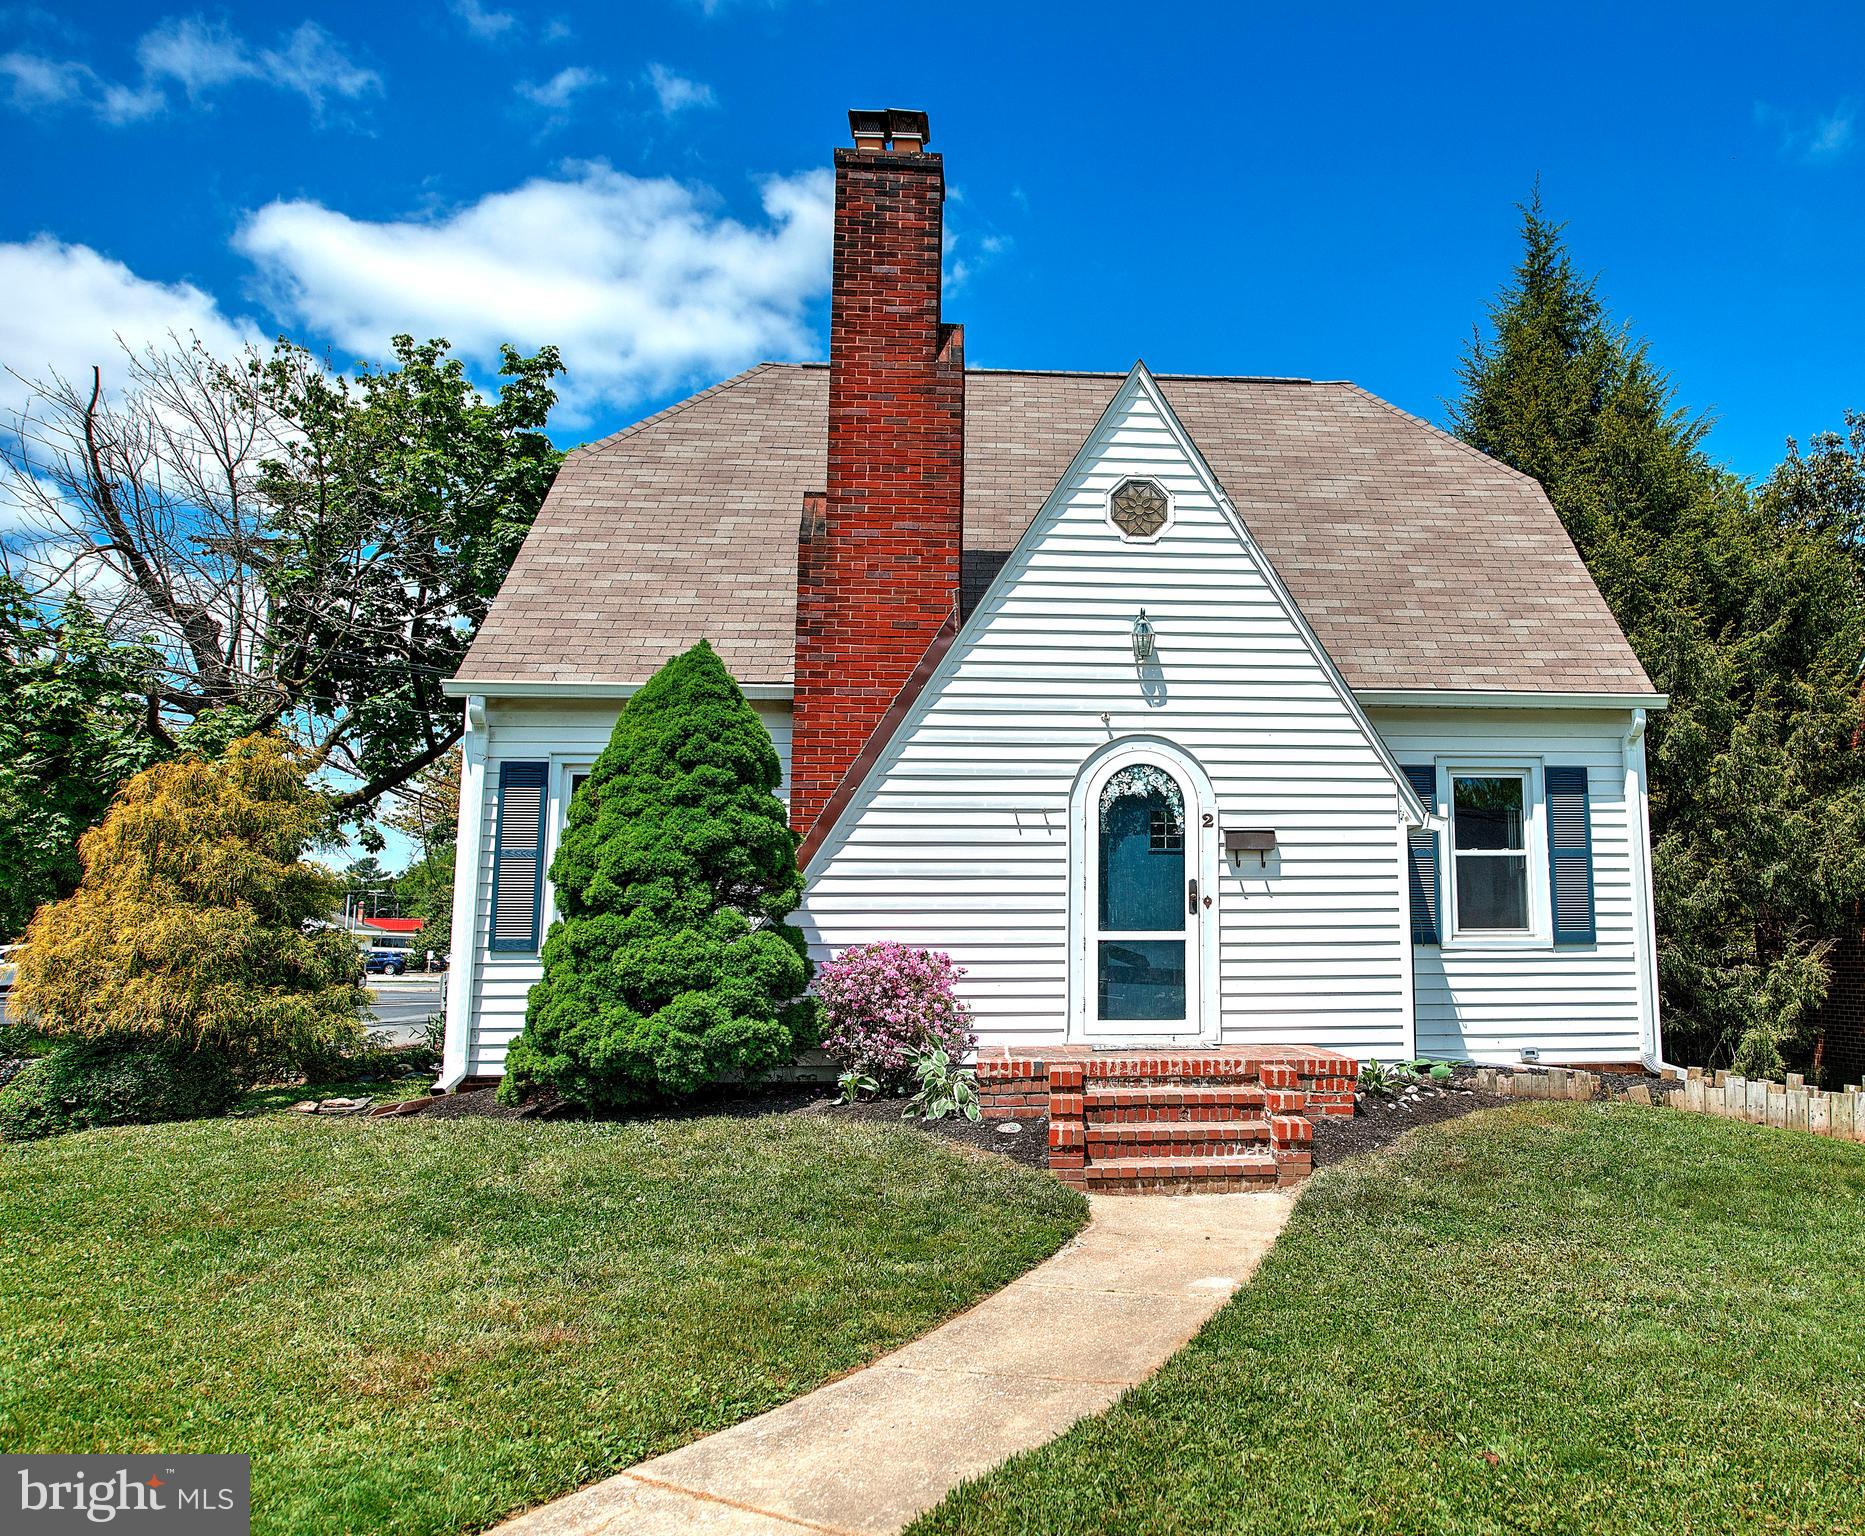 EXQUISITE CAPE COD - Are you looking for a completely updated home with a first floor Primary Bedroo